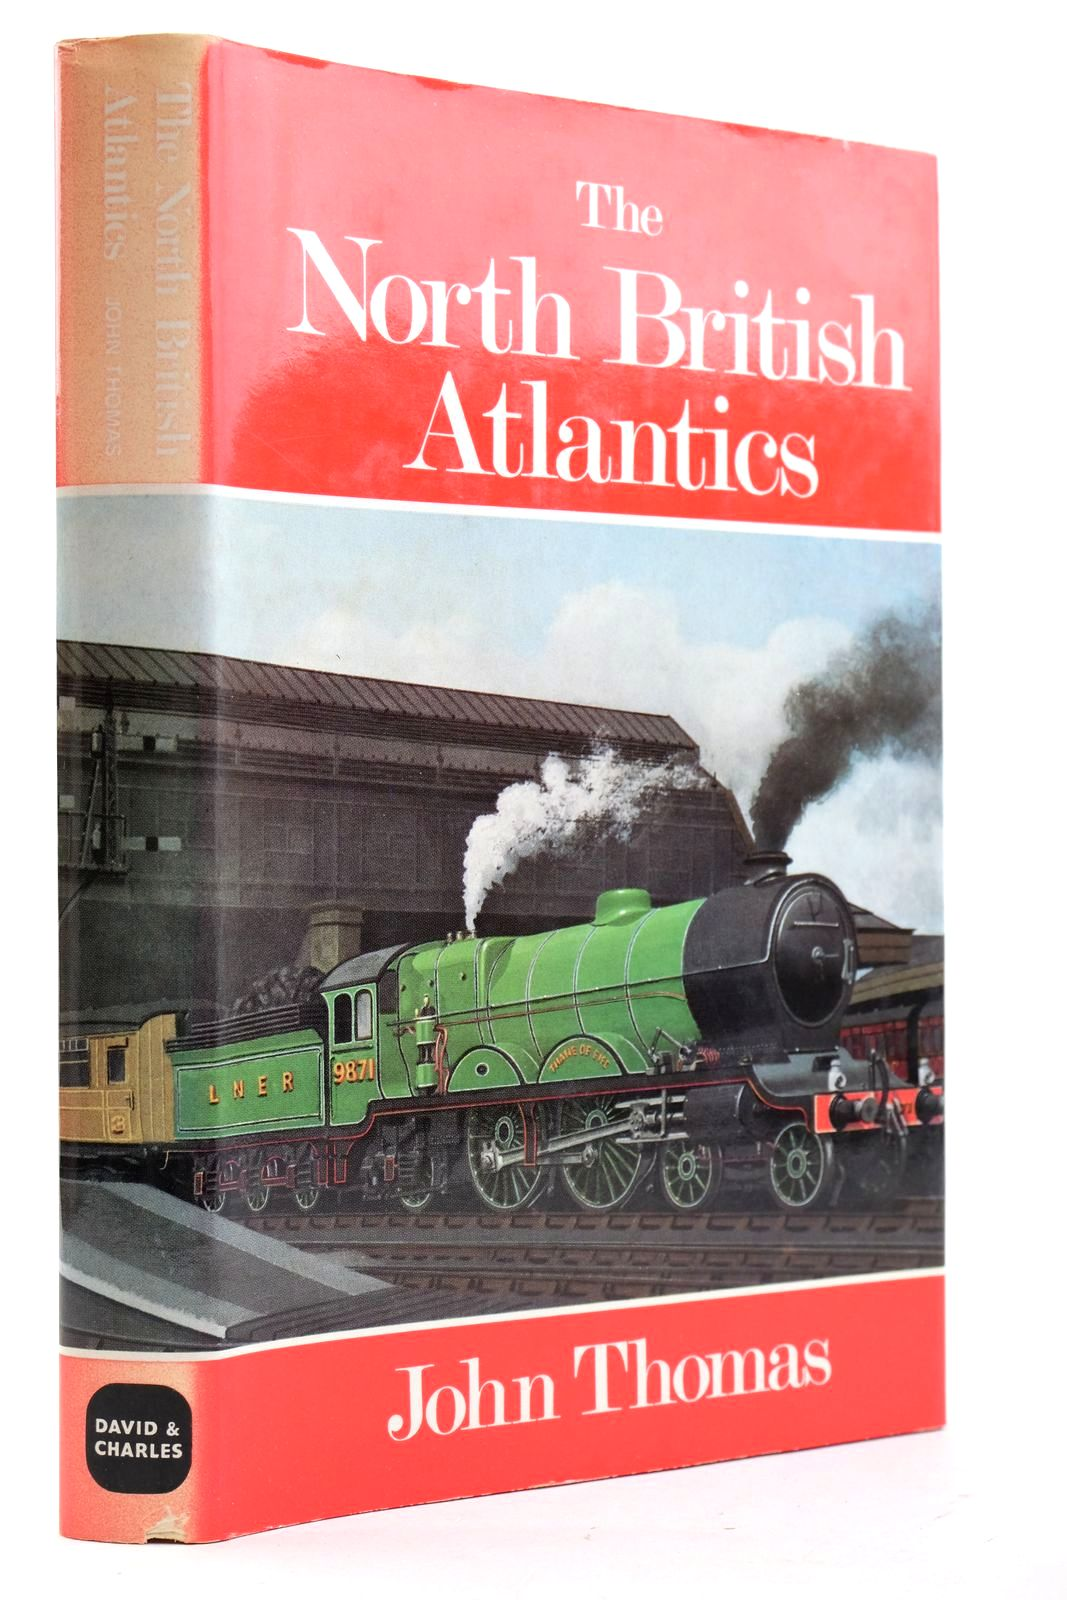 Photo of THE NORTH BRITISH ATLANTICS written by Thomas, John published by David & Charles (STOCK CODE: 2133034)  for sale by Stella & Rose's Books